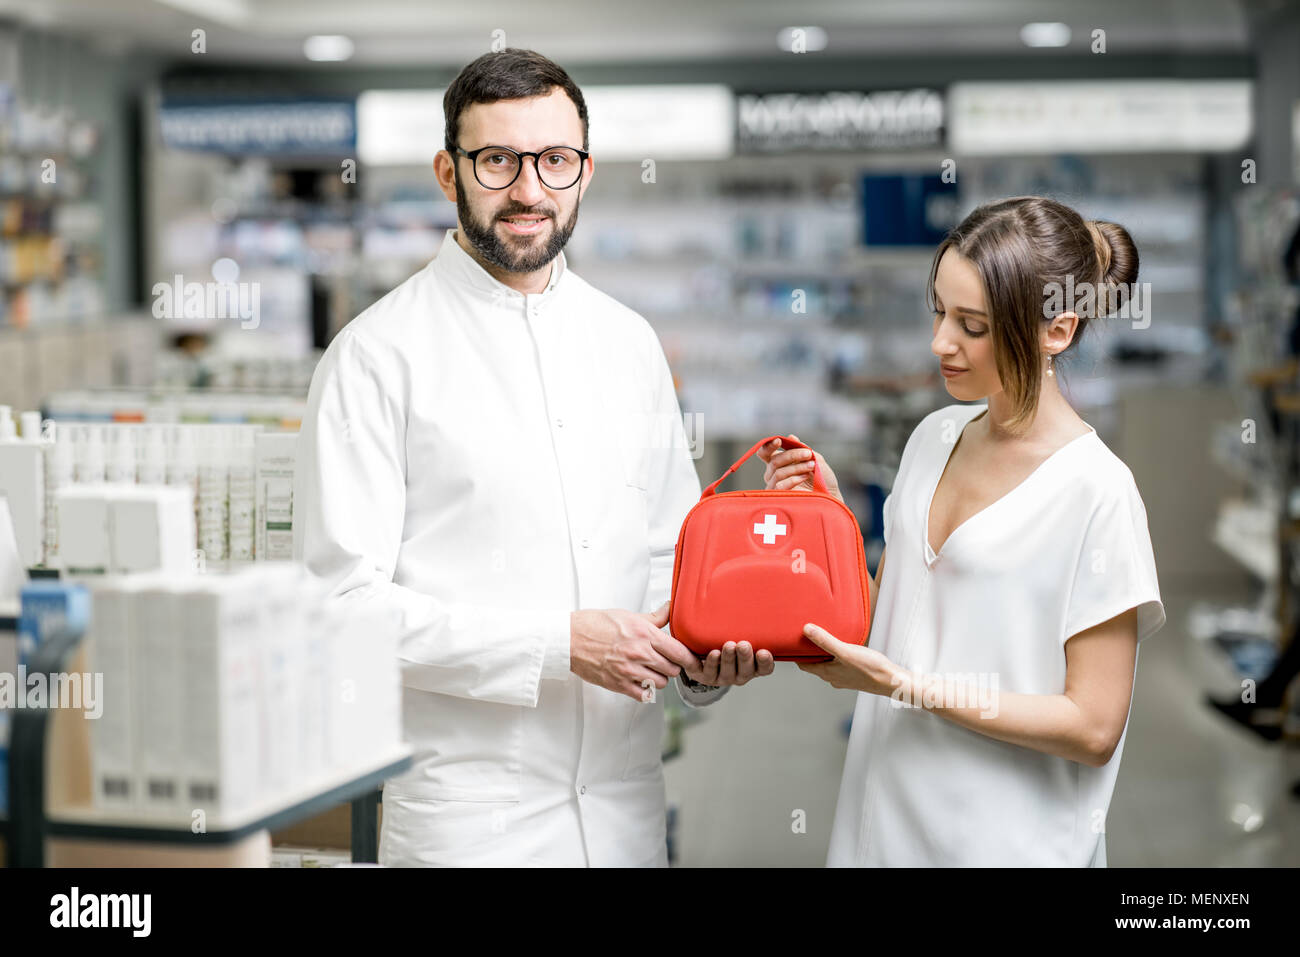 Pharmacist with client and first aid kit in the pharmacy - Stock Image